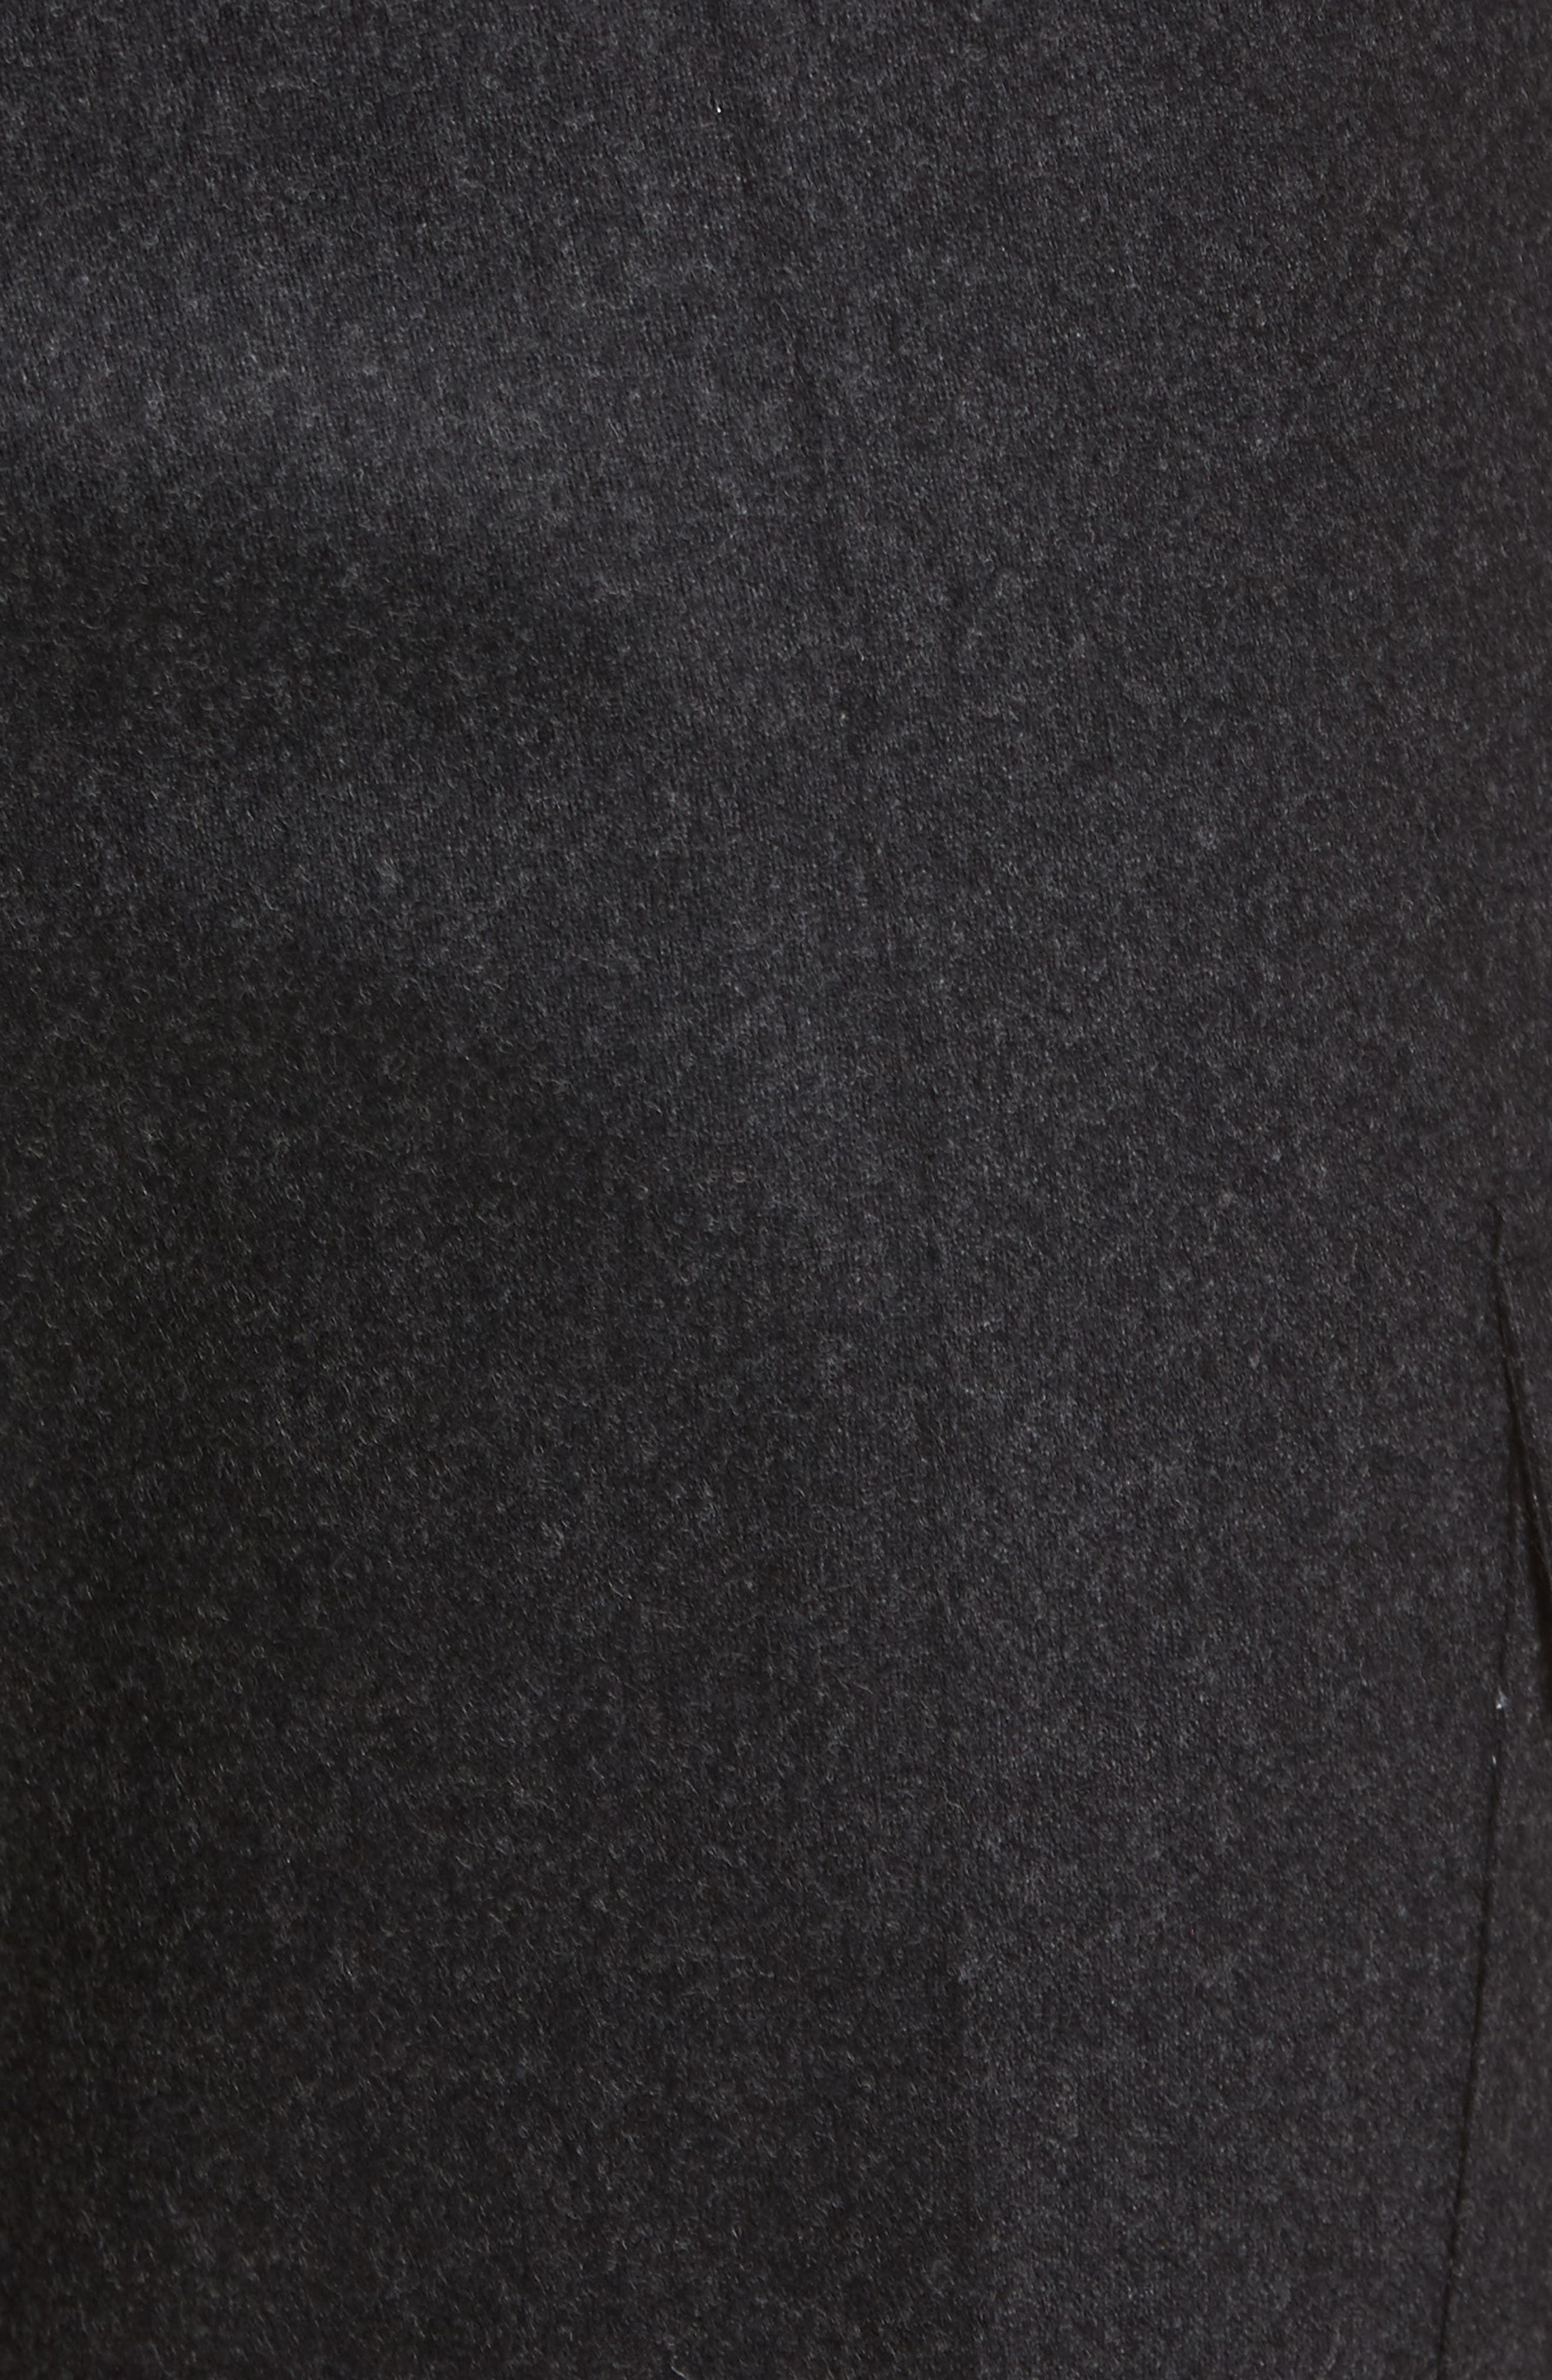 Balour Flat Front Stretch Solid Wool & Cashmere Cargo Trousers,                             Alternate thumbnail 2, color,